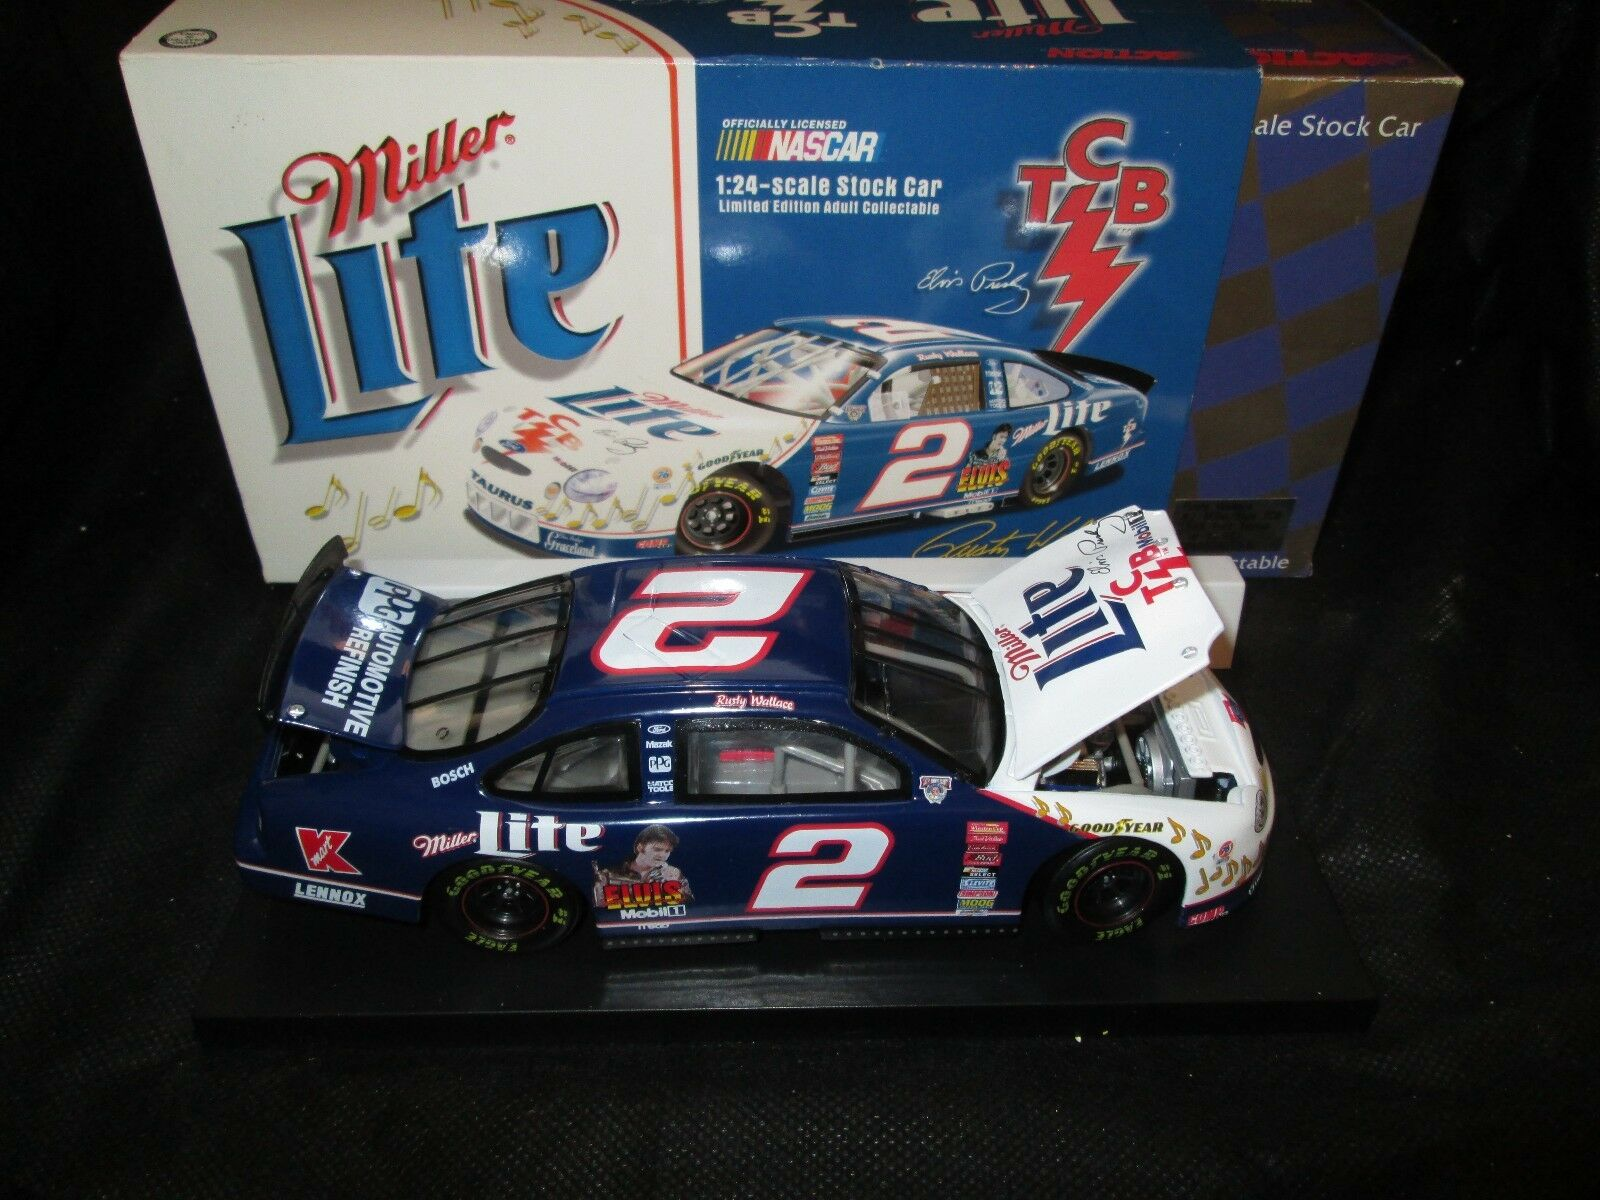 Action NASCAR 1 24 Car Rusty Wallace 2 Miller Lite TCB 1998 Ford